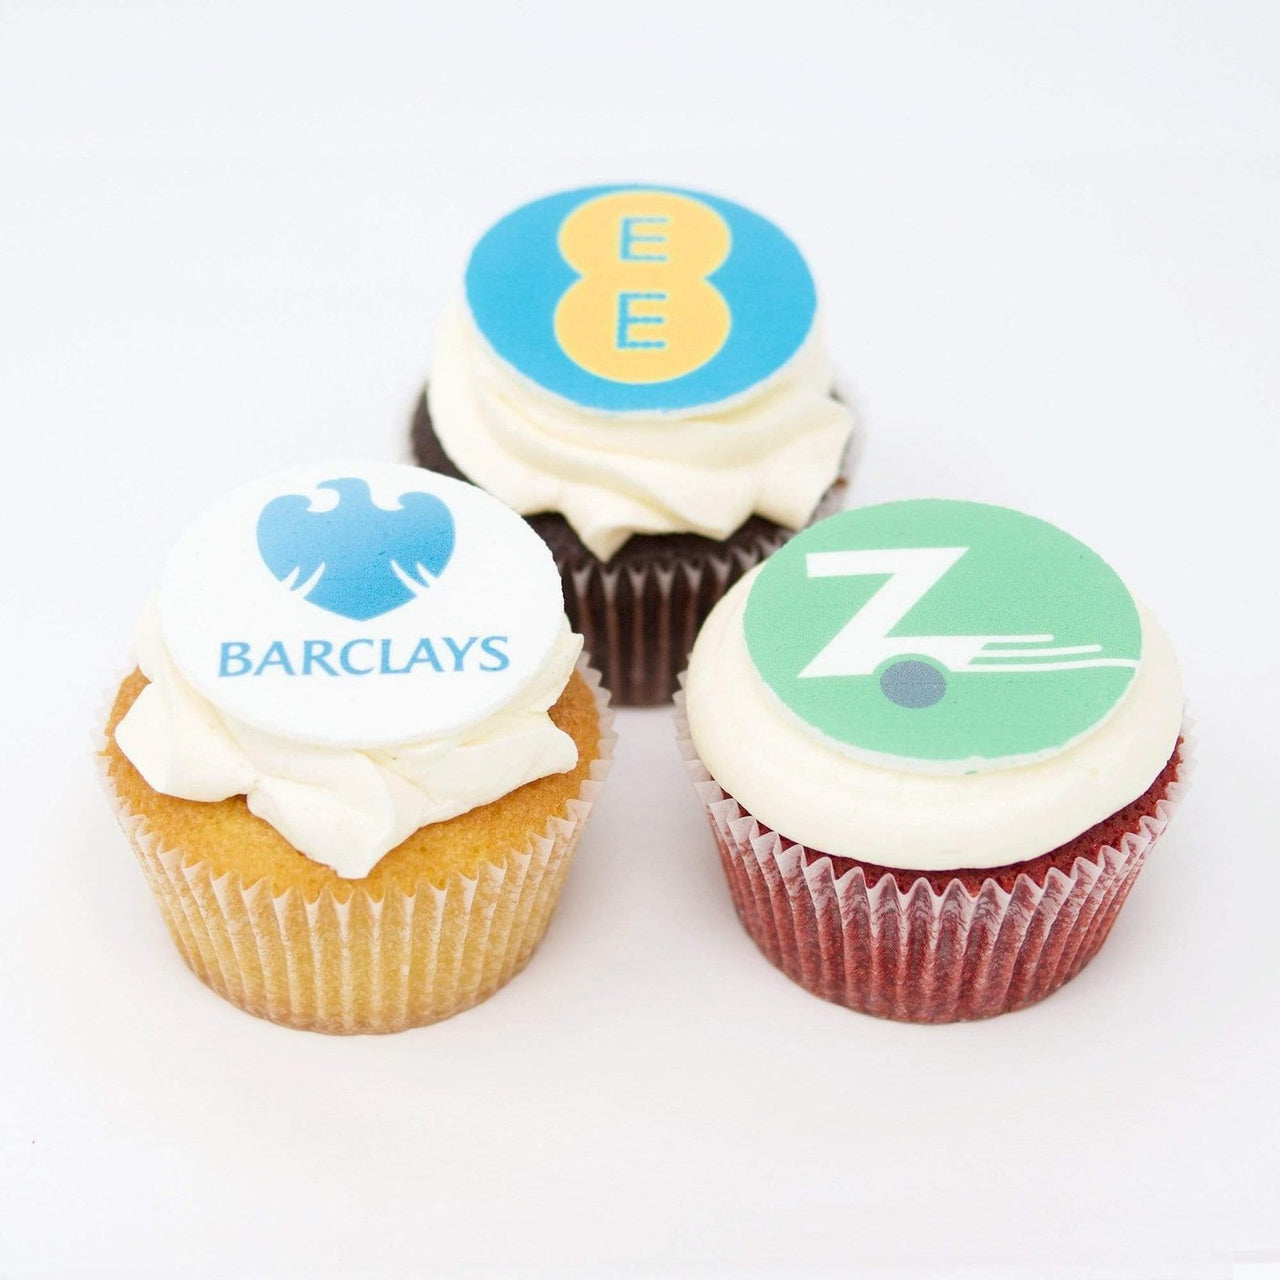 mixed flavour branded cupcakes with white icing